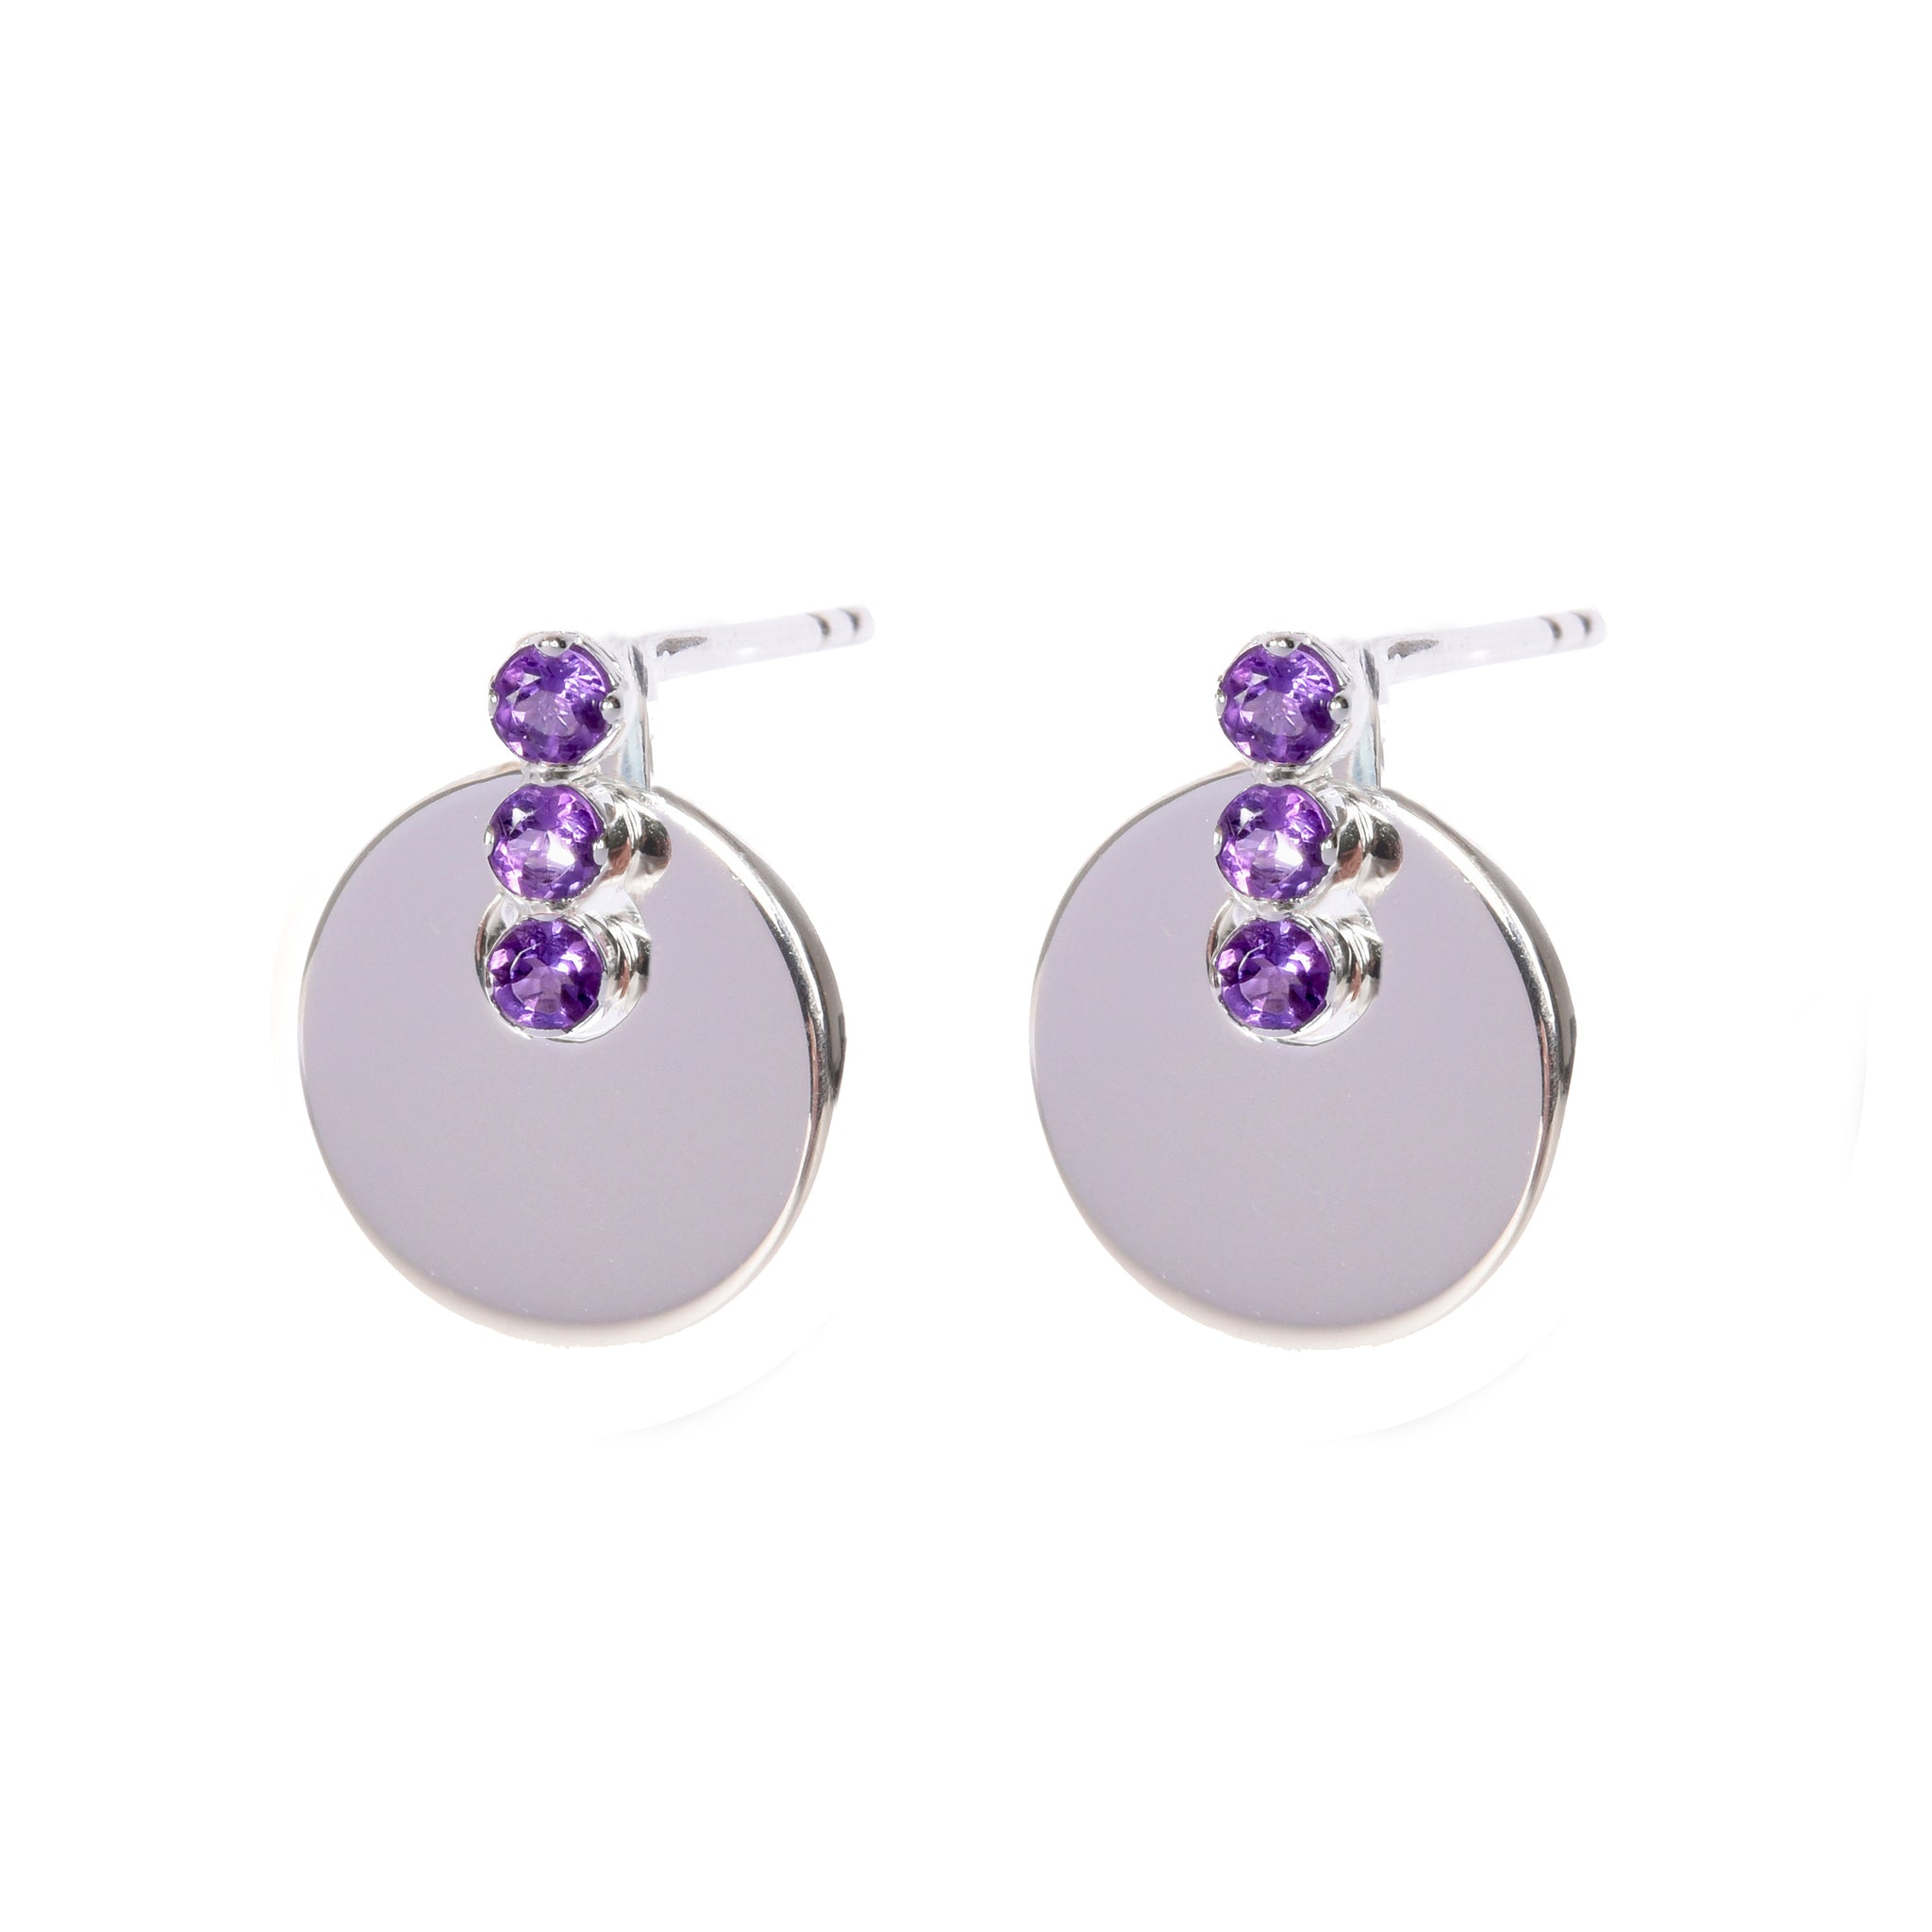 DAVINA COMBE - AMETHYST SIENNA DISC EARRINGS